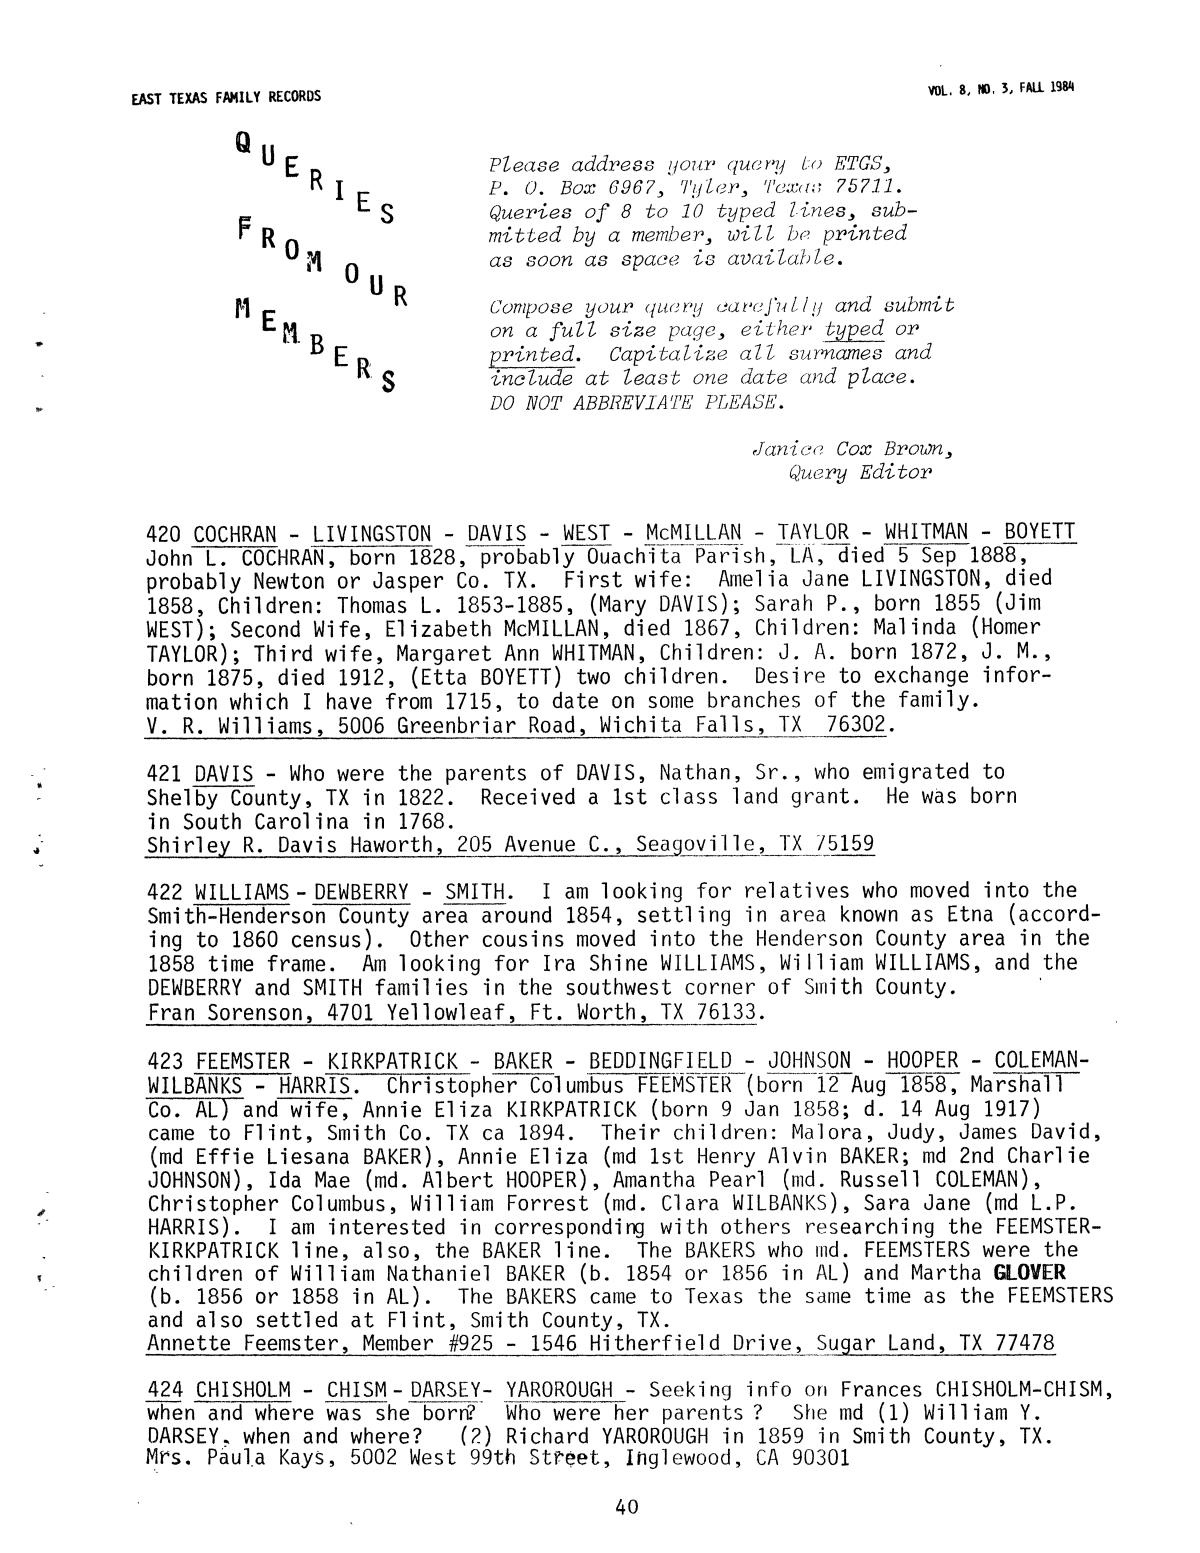 East Texas Family Records, Volume 8, Number 3, Fall 1984 - Page 40 ...